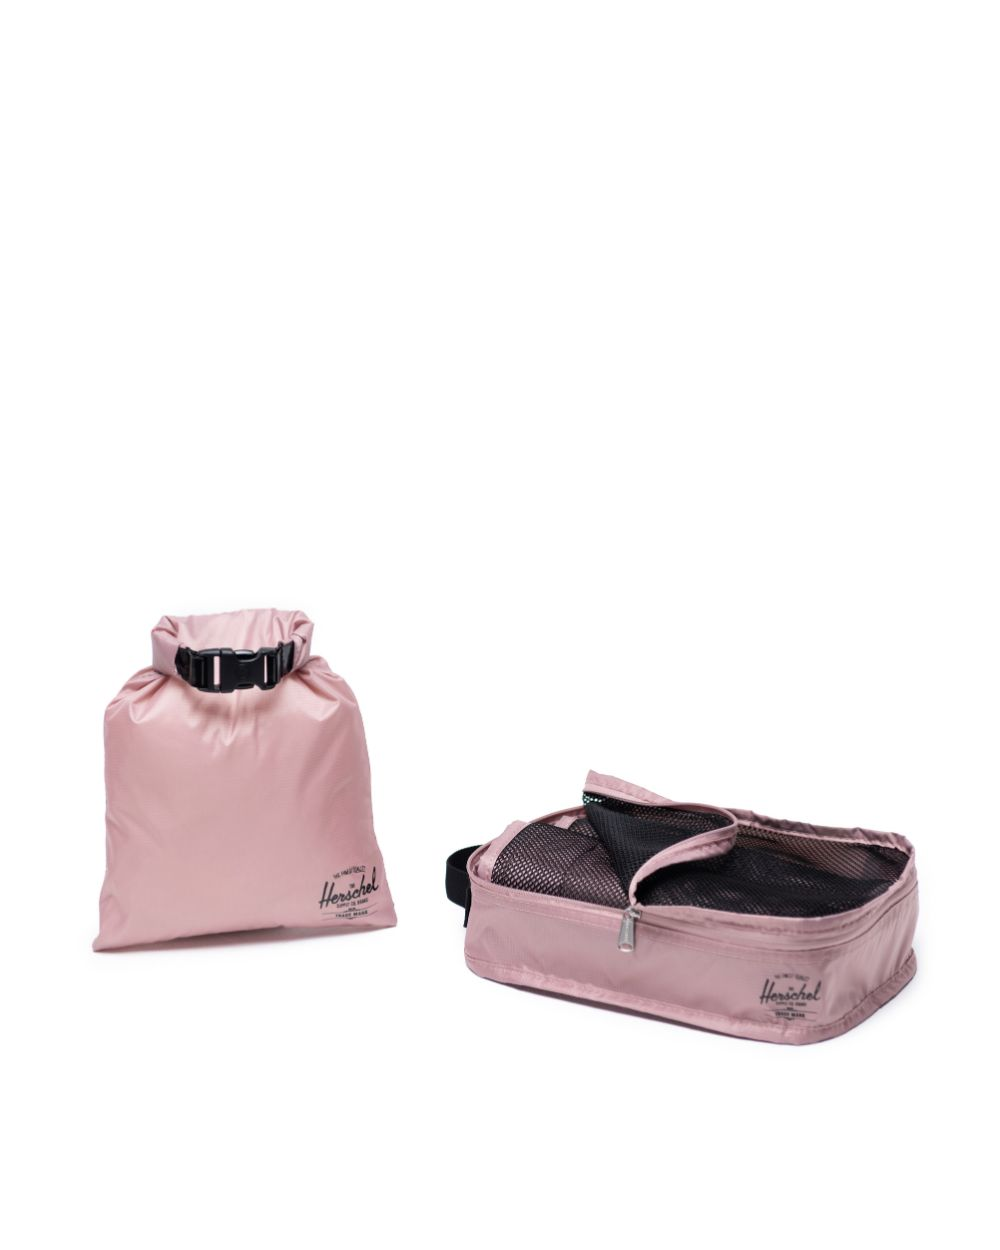 travel gift of dusty pink colour packing cudes with mesh top plus dry bag